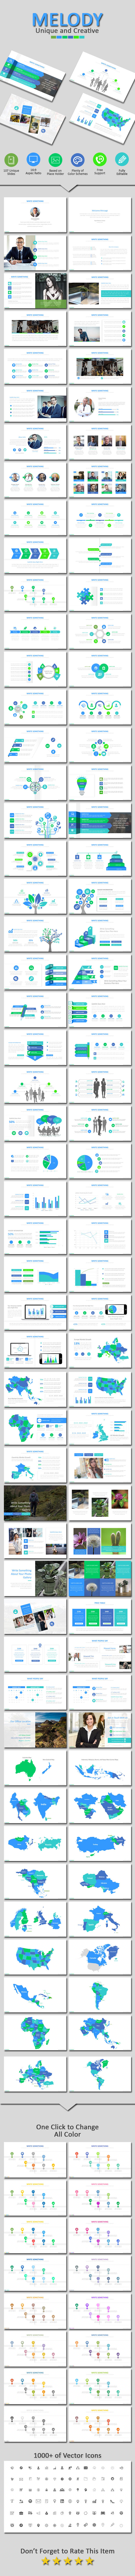 Melody Creative Powerpoint - Business PowerPoint Templates